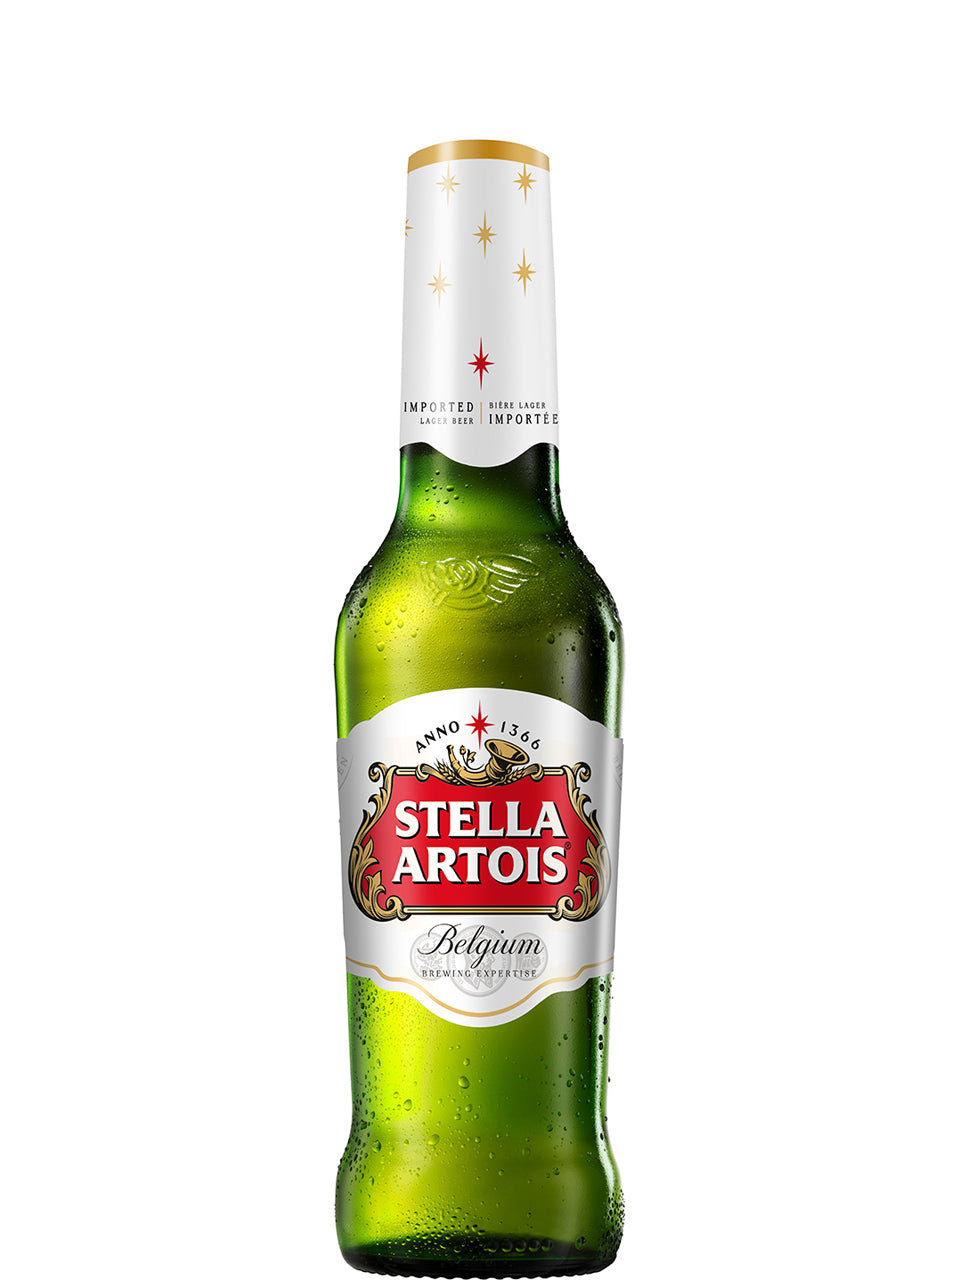 Stella Artois 330ml bottle